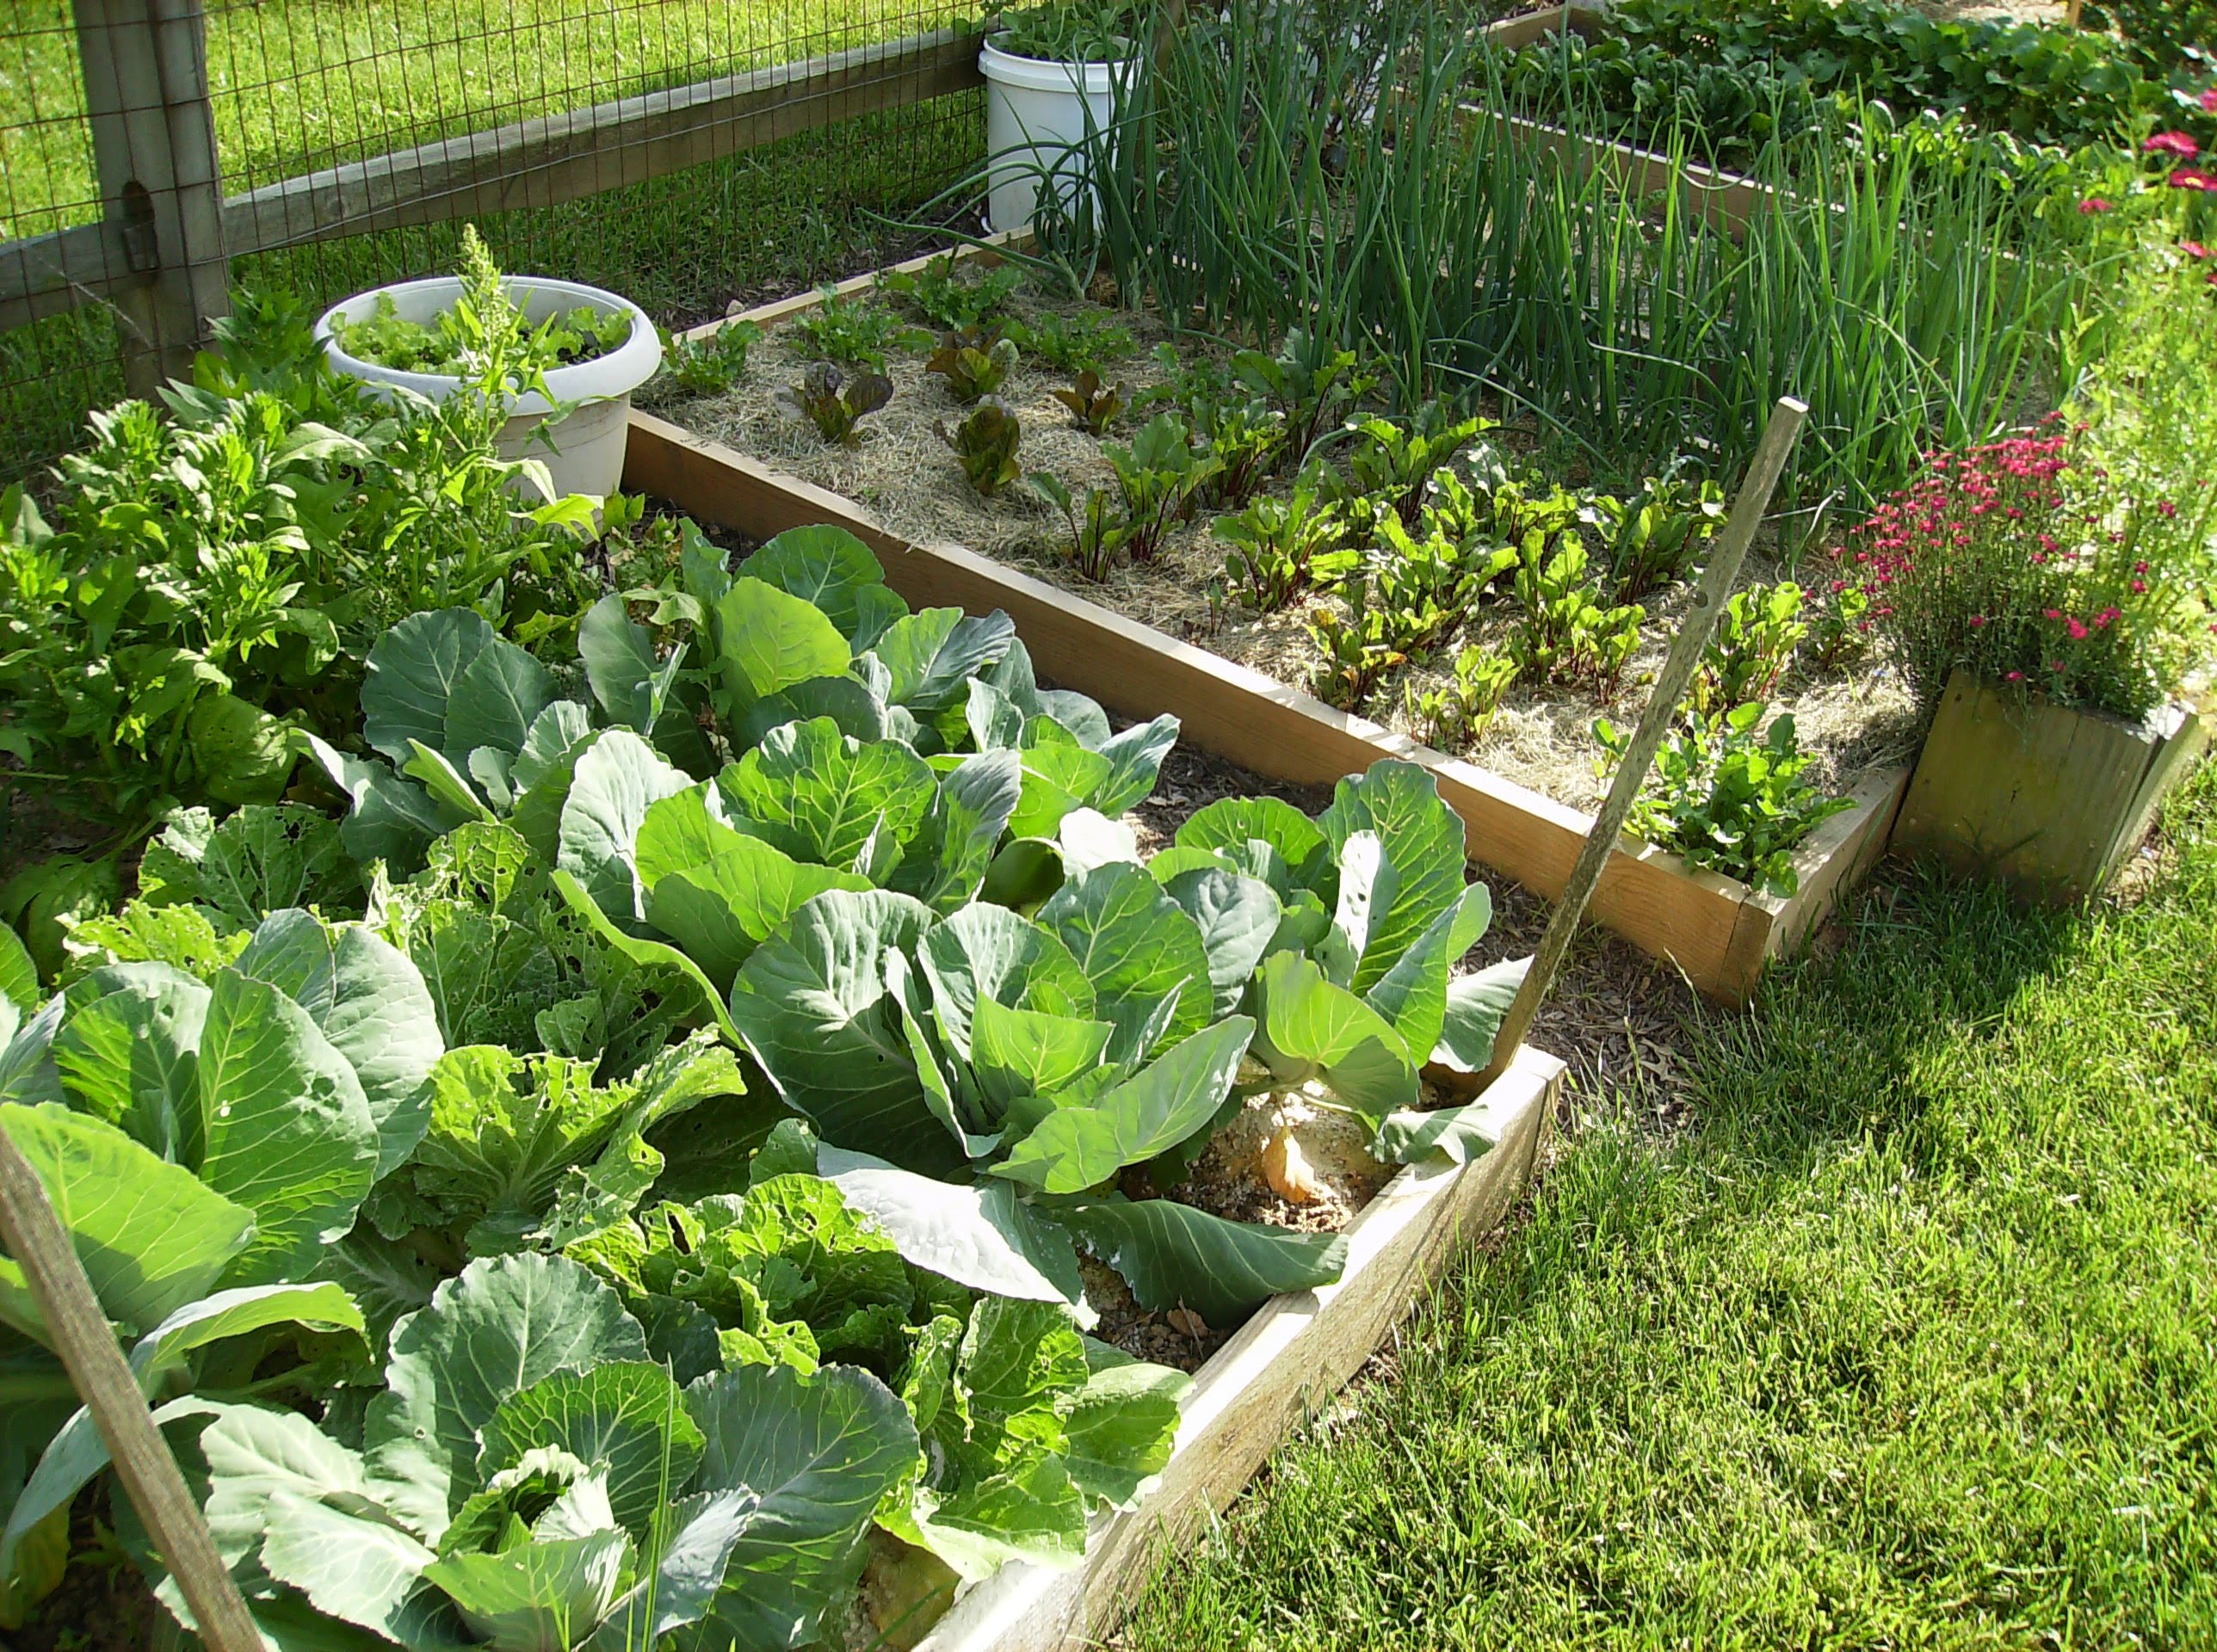 Watering Vegetable Gardening In A Raised Bed (Image 10 of 10)